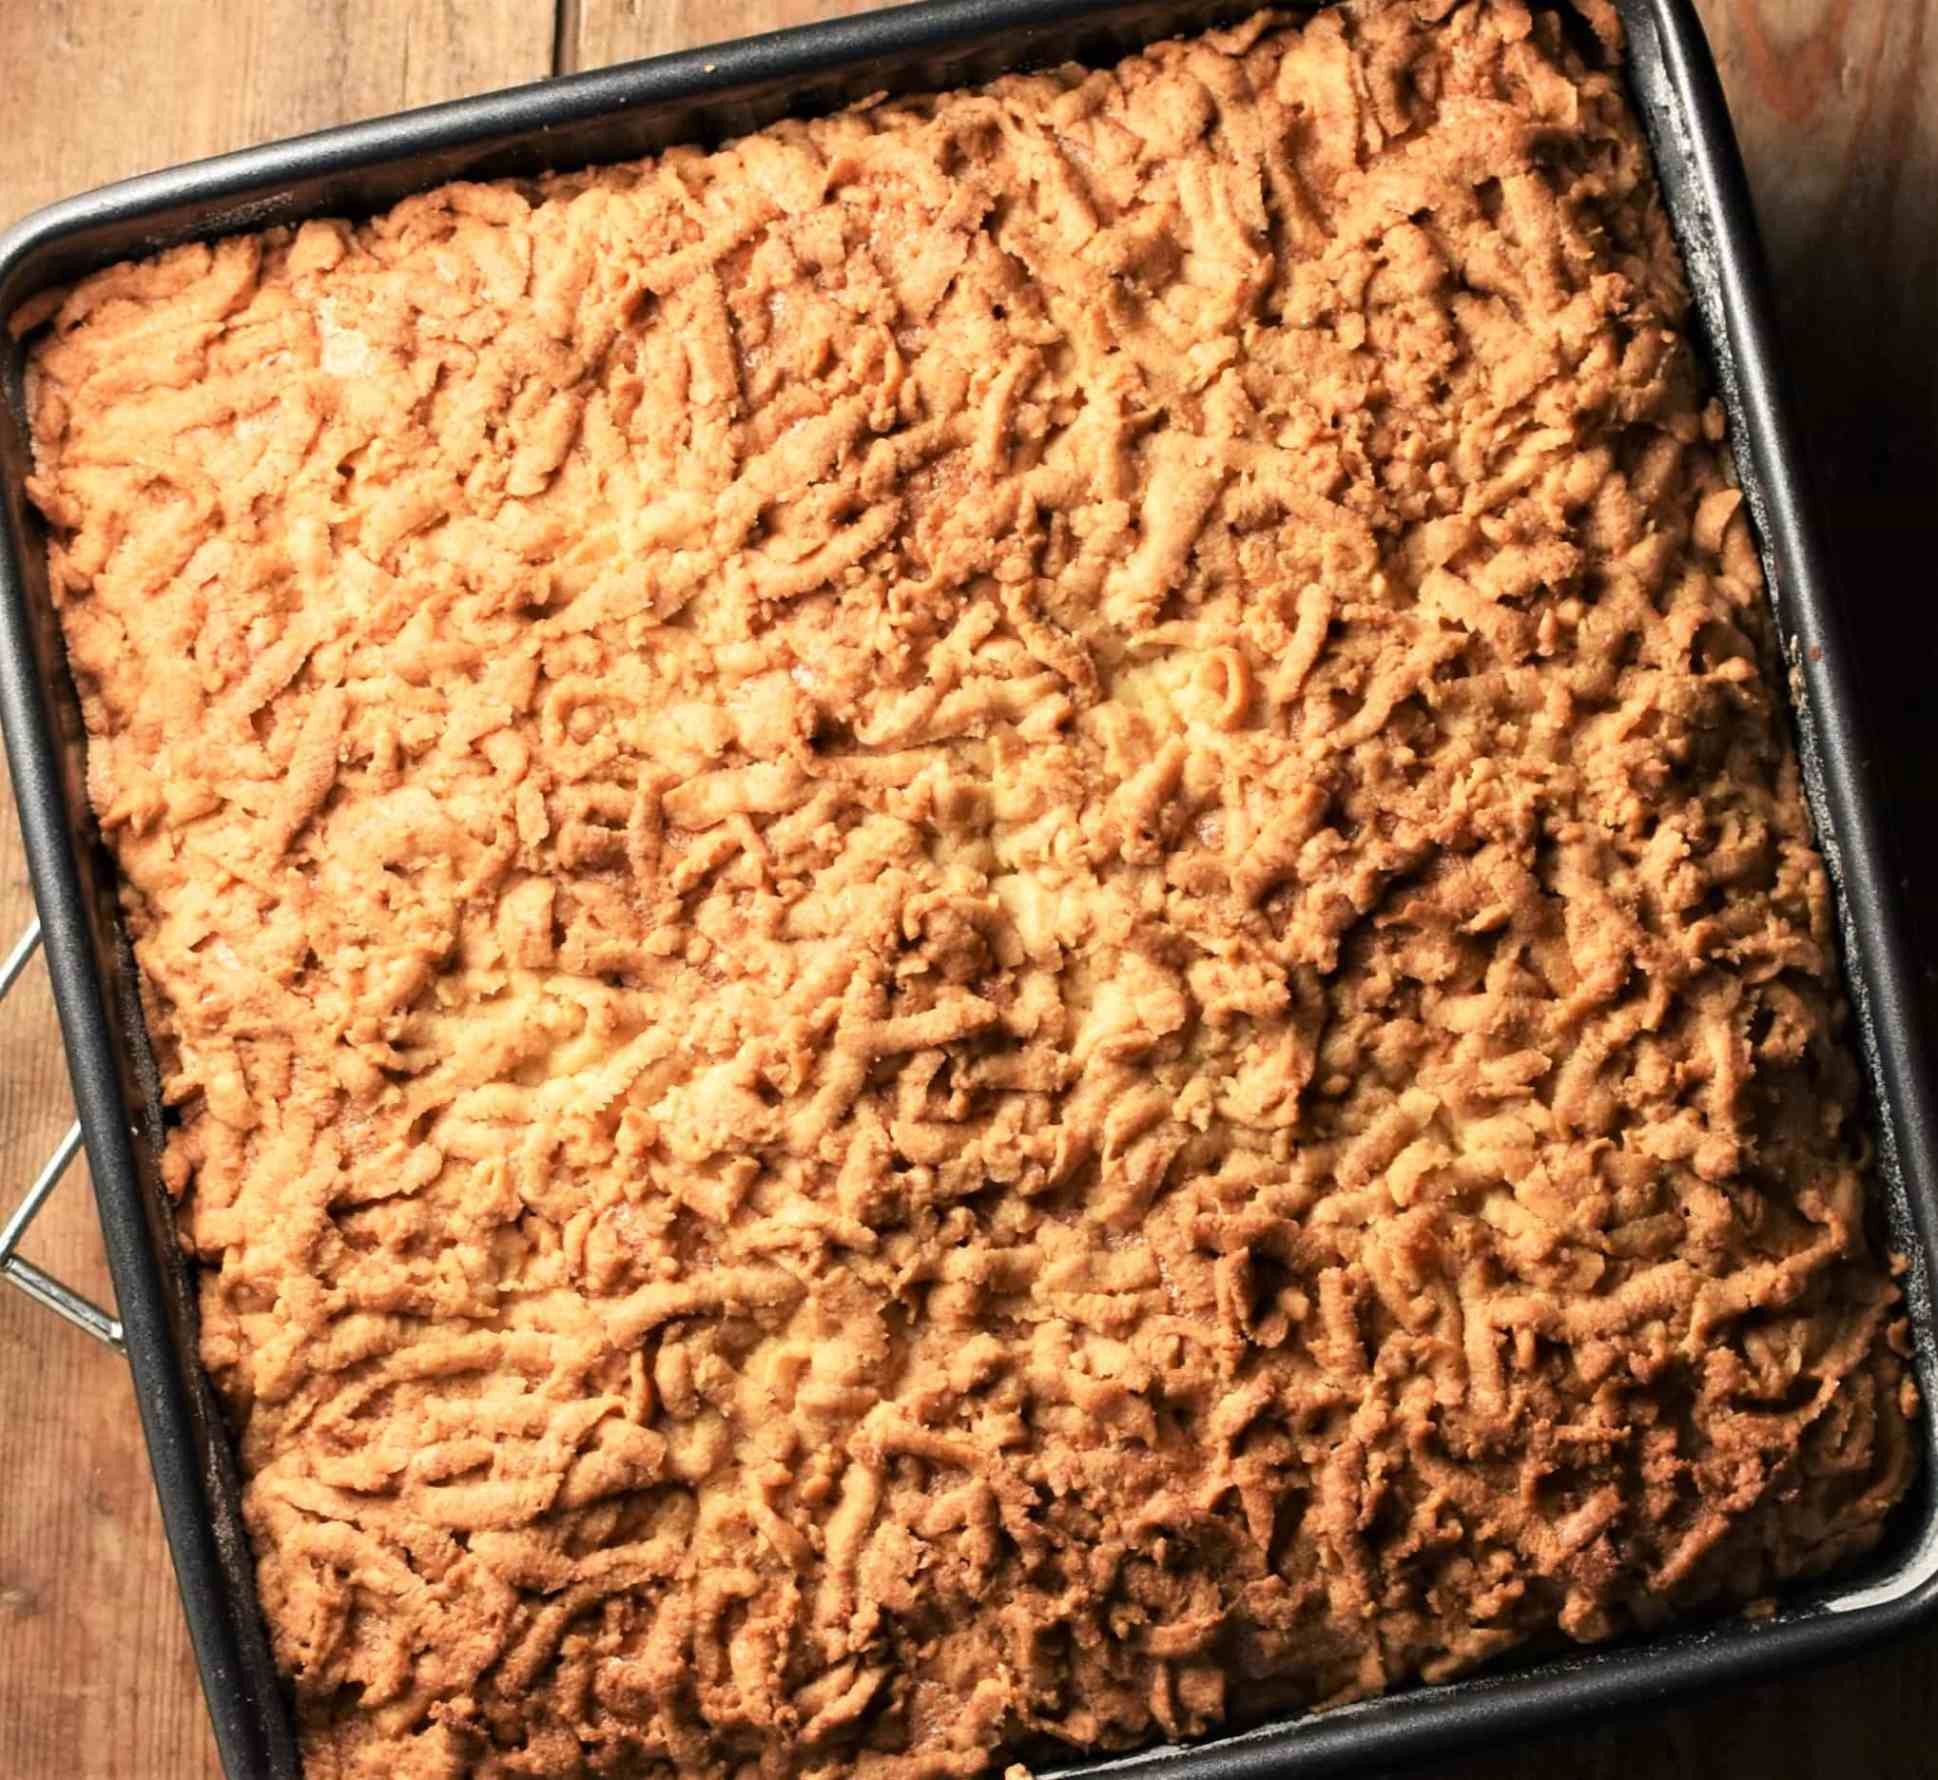 Baked crumble coffee cake.